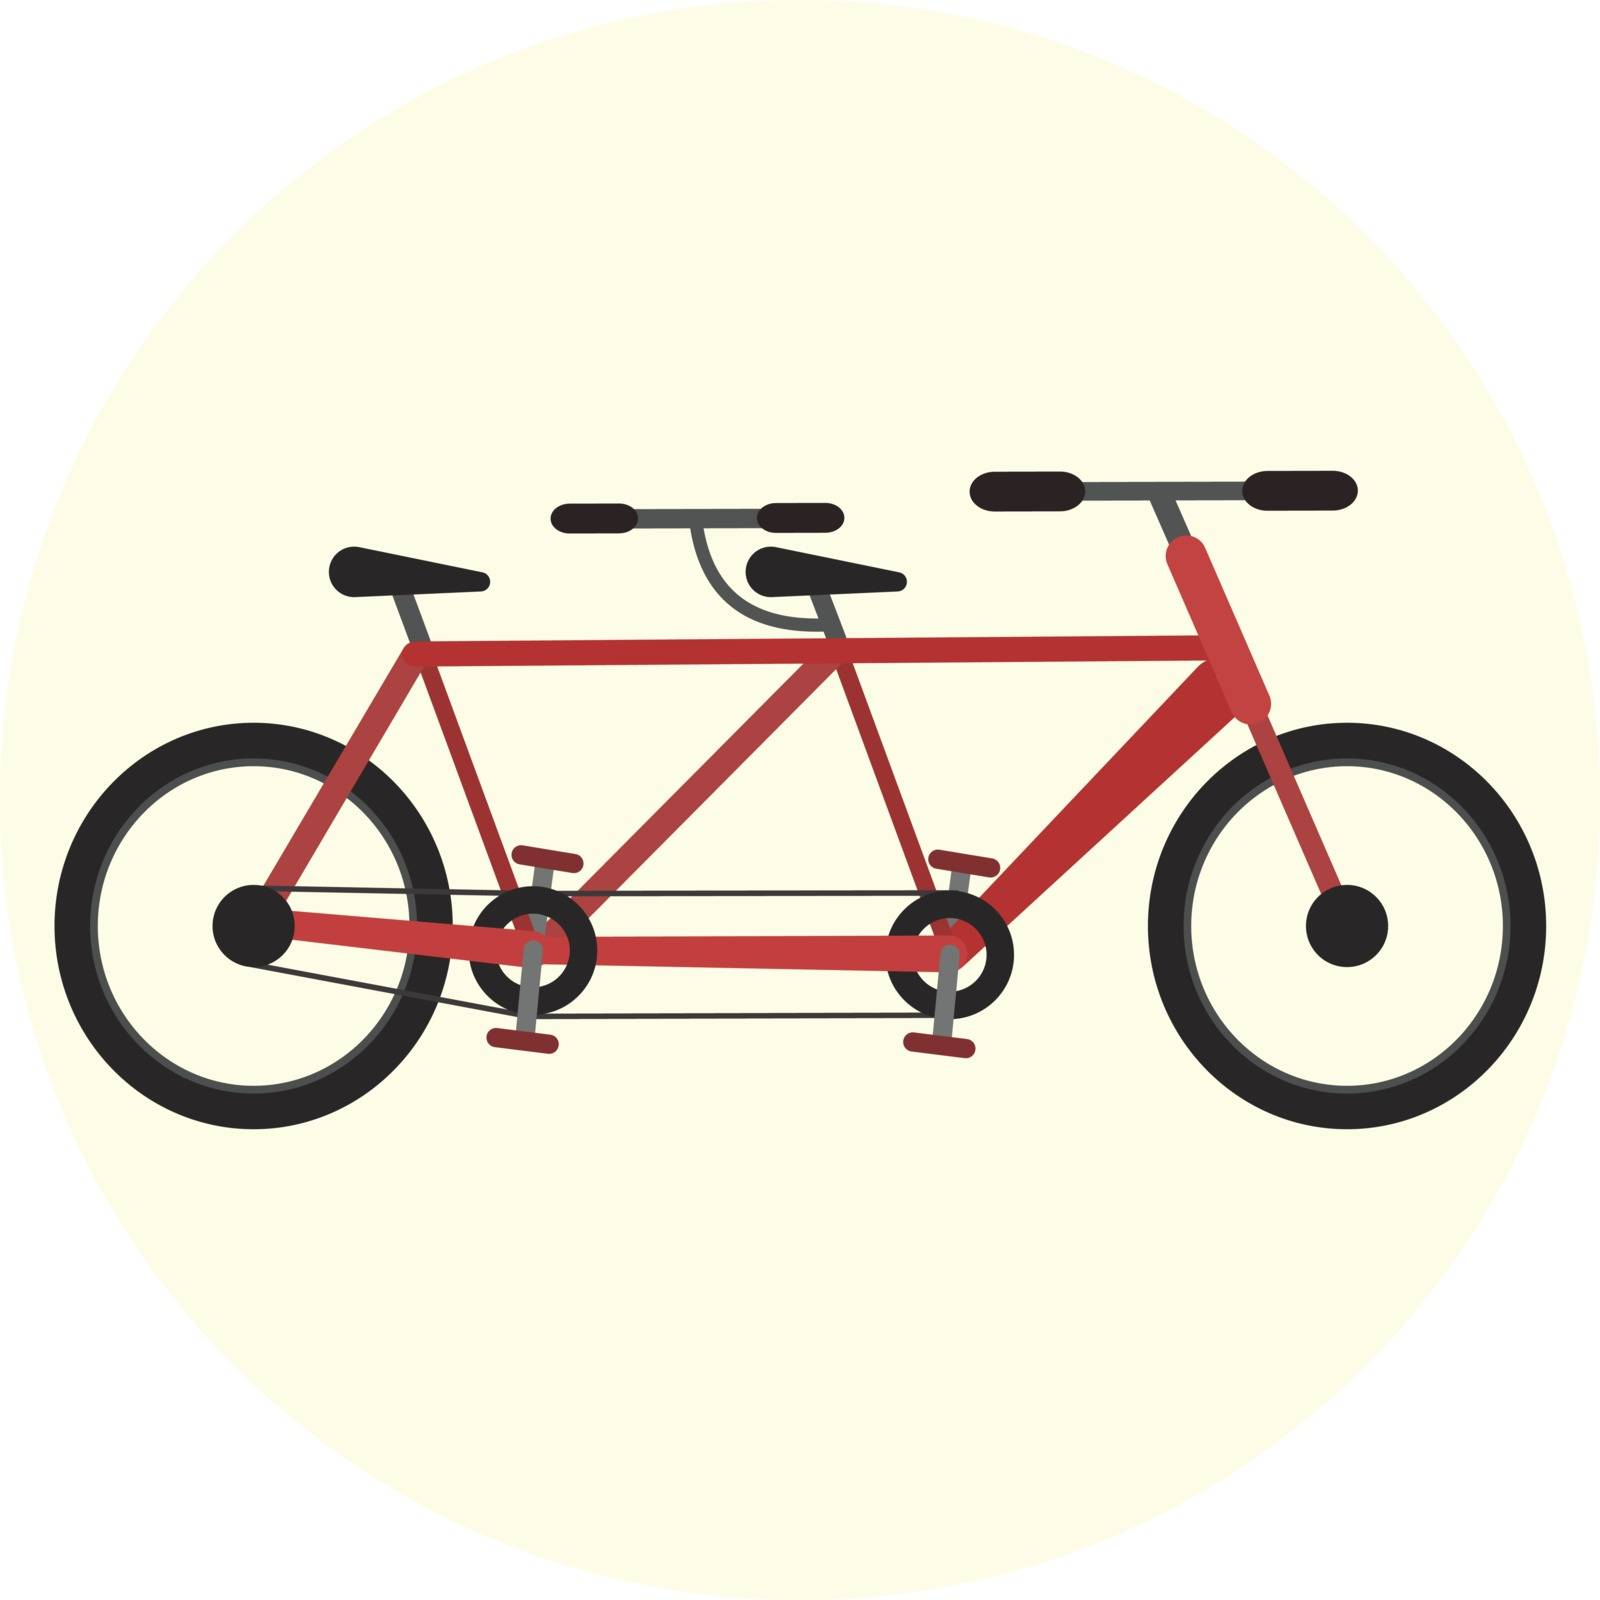 Flat vector red tandem bike icon, bicycle for couple, ecological city transport